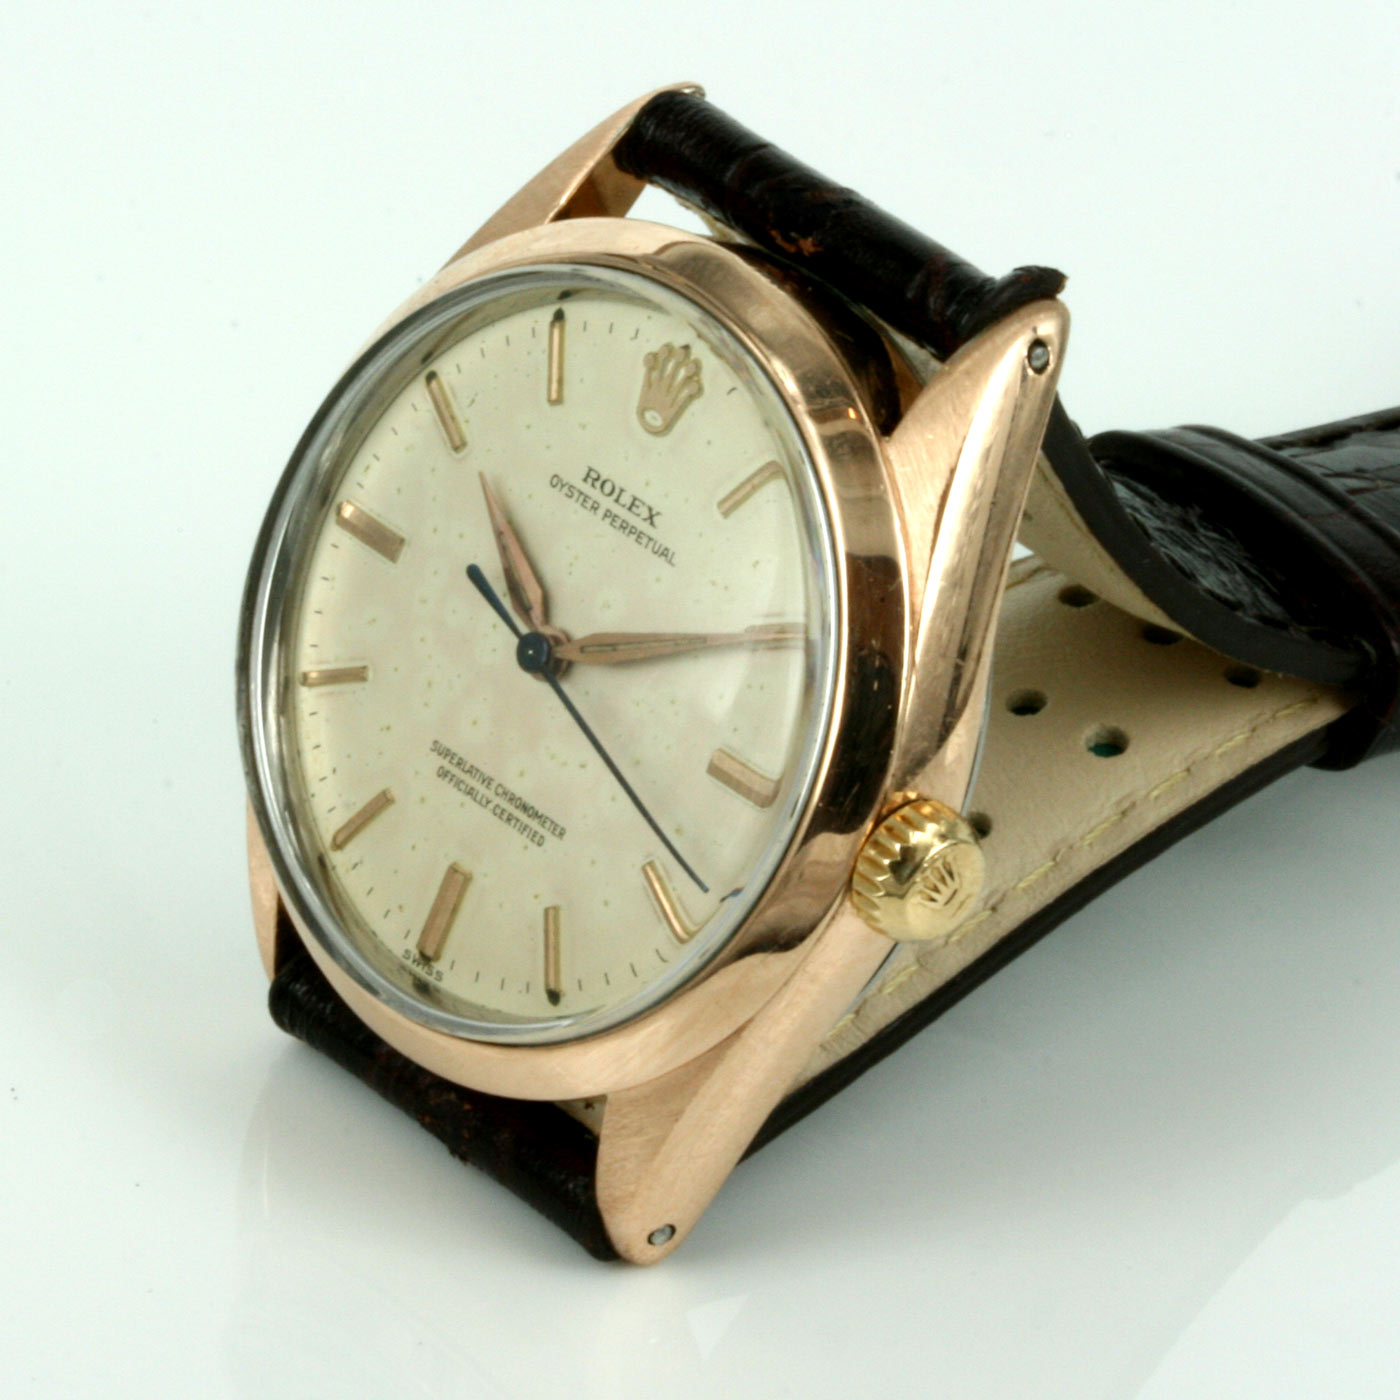 Vintage Rolex Watches Buy 1960's Vintage Rolex Watch Model 1024 Sold Items, Sold